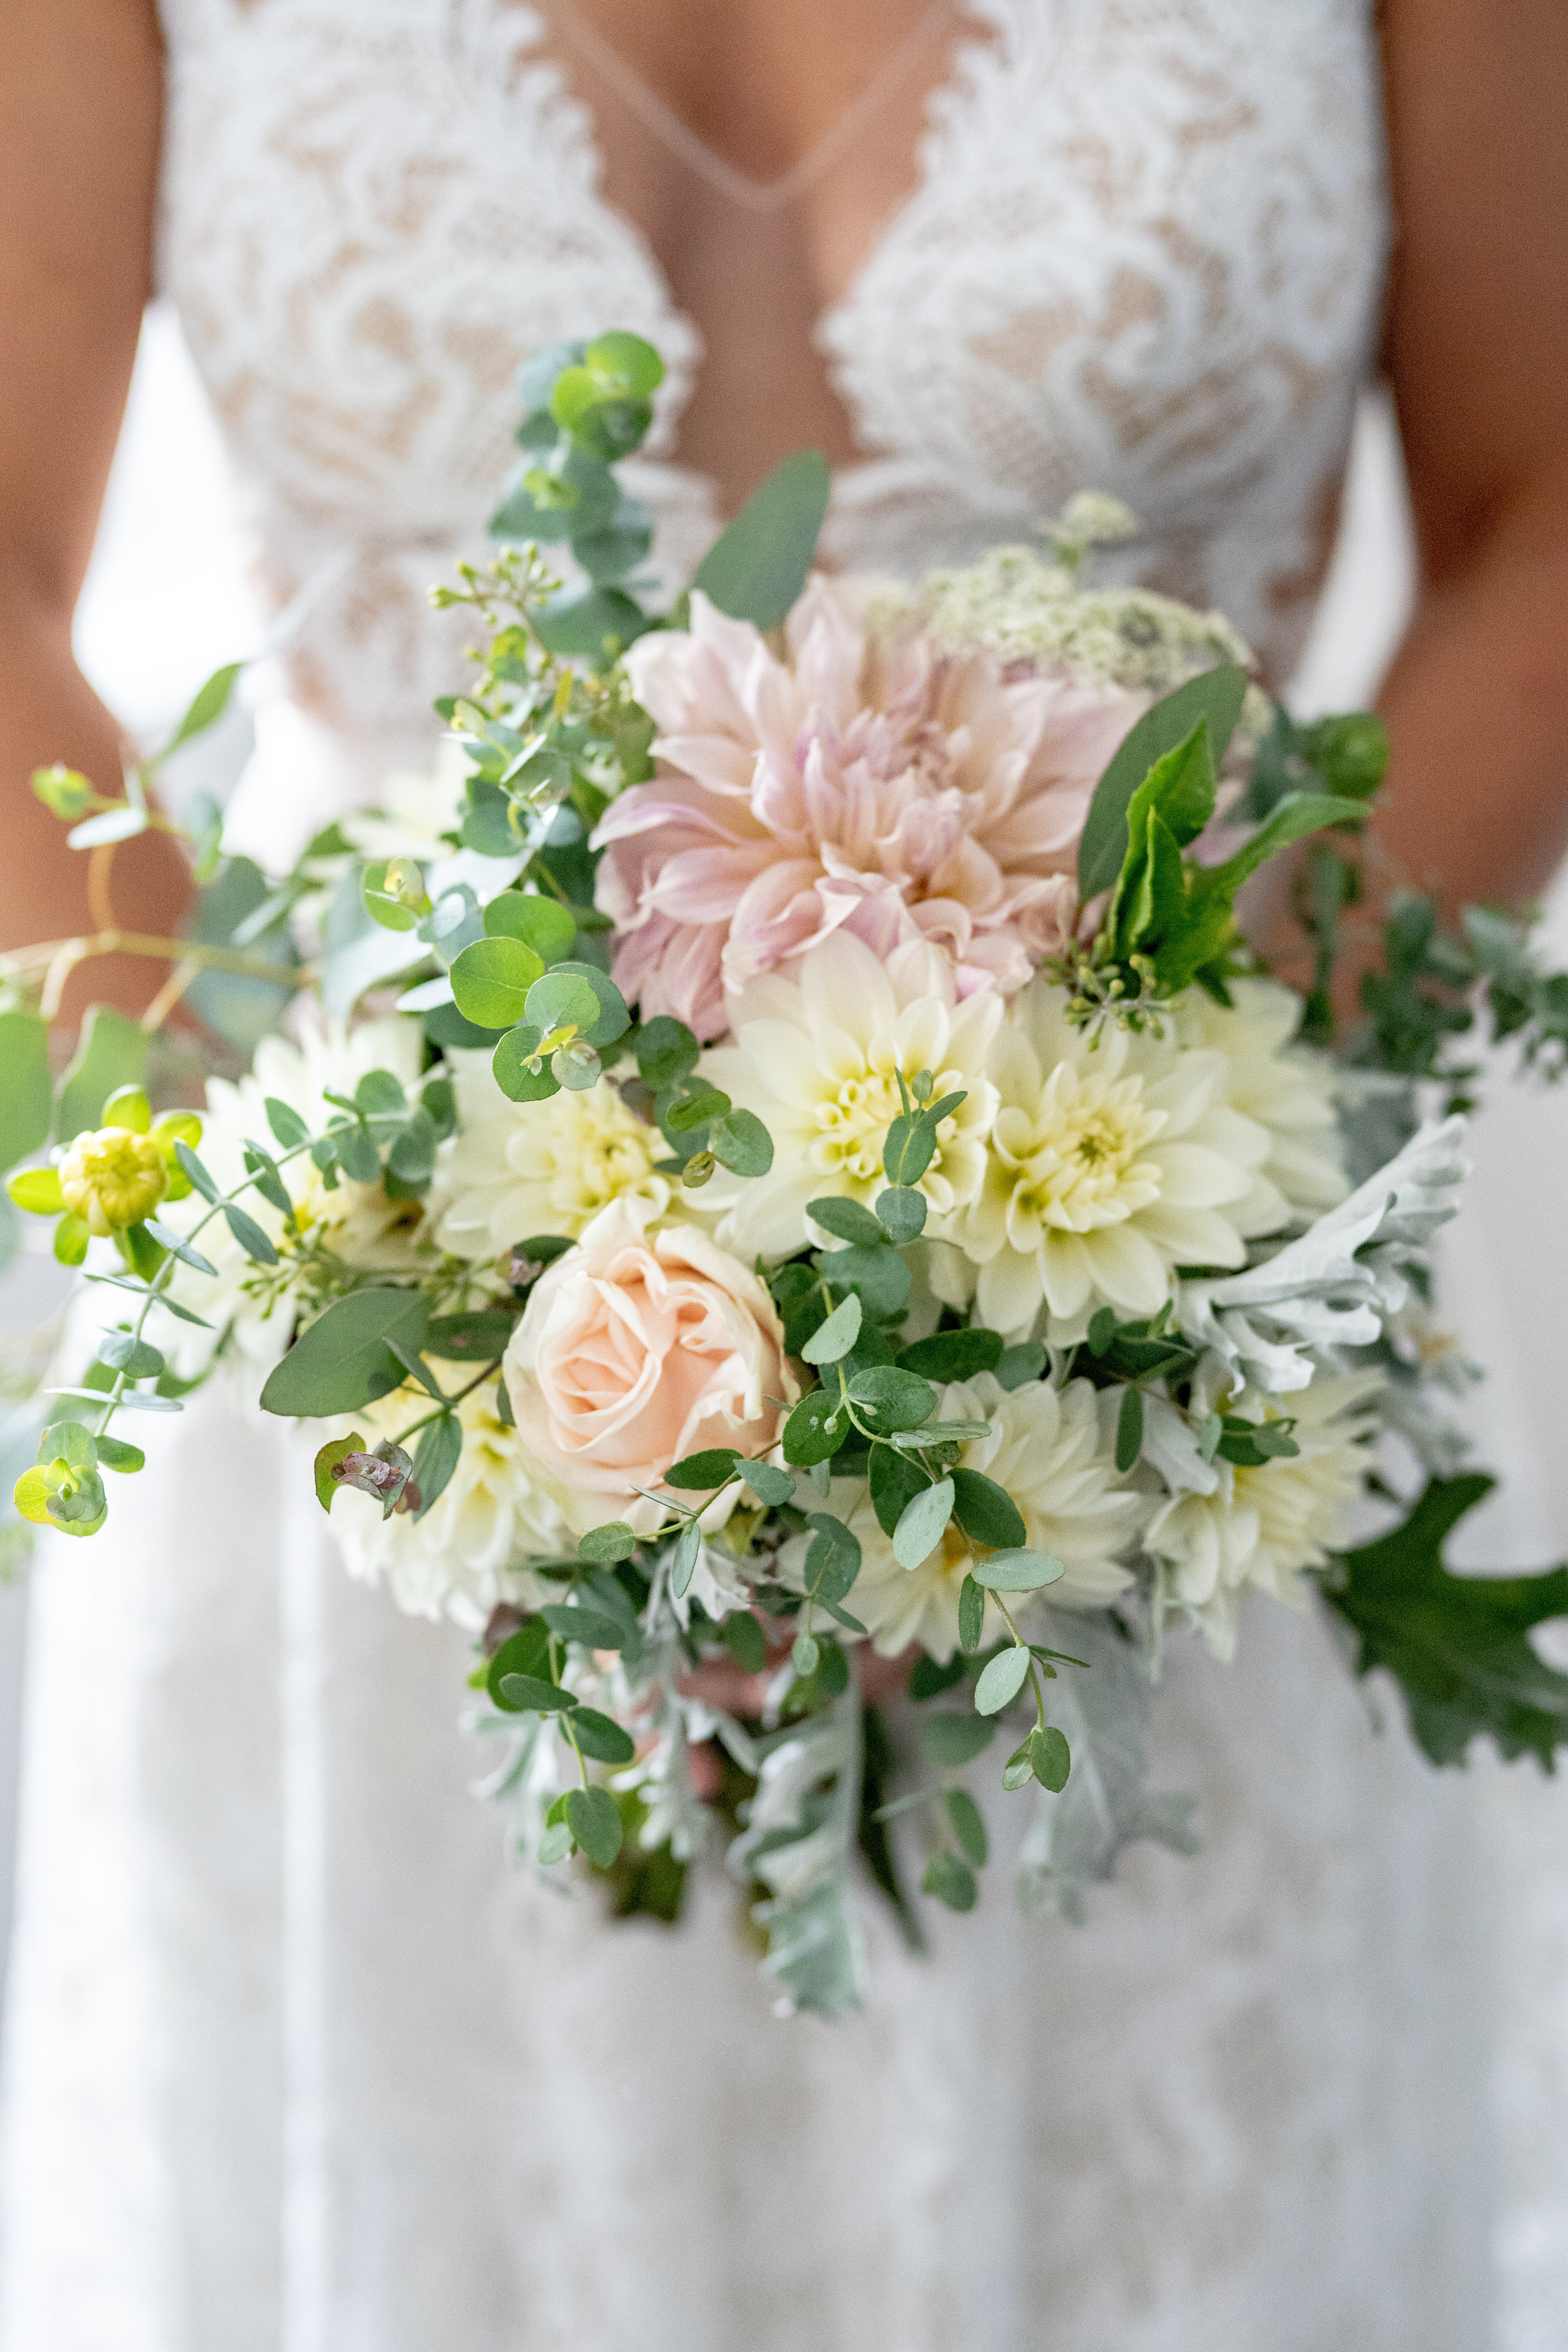 The Bridal Bouquet: Creamy white Dahlias with blush Cafe Au Lait Dahlias and Roses. Our own Silver Drop Eucalyptus and Dusty Miller with touches of Seeded Eucalyptus for greens and texture.